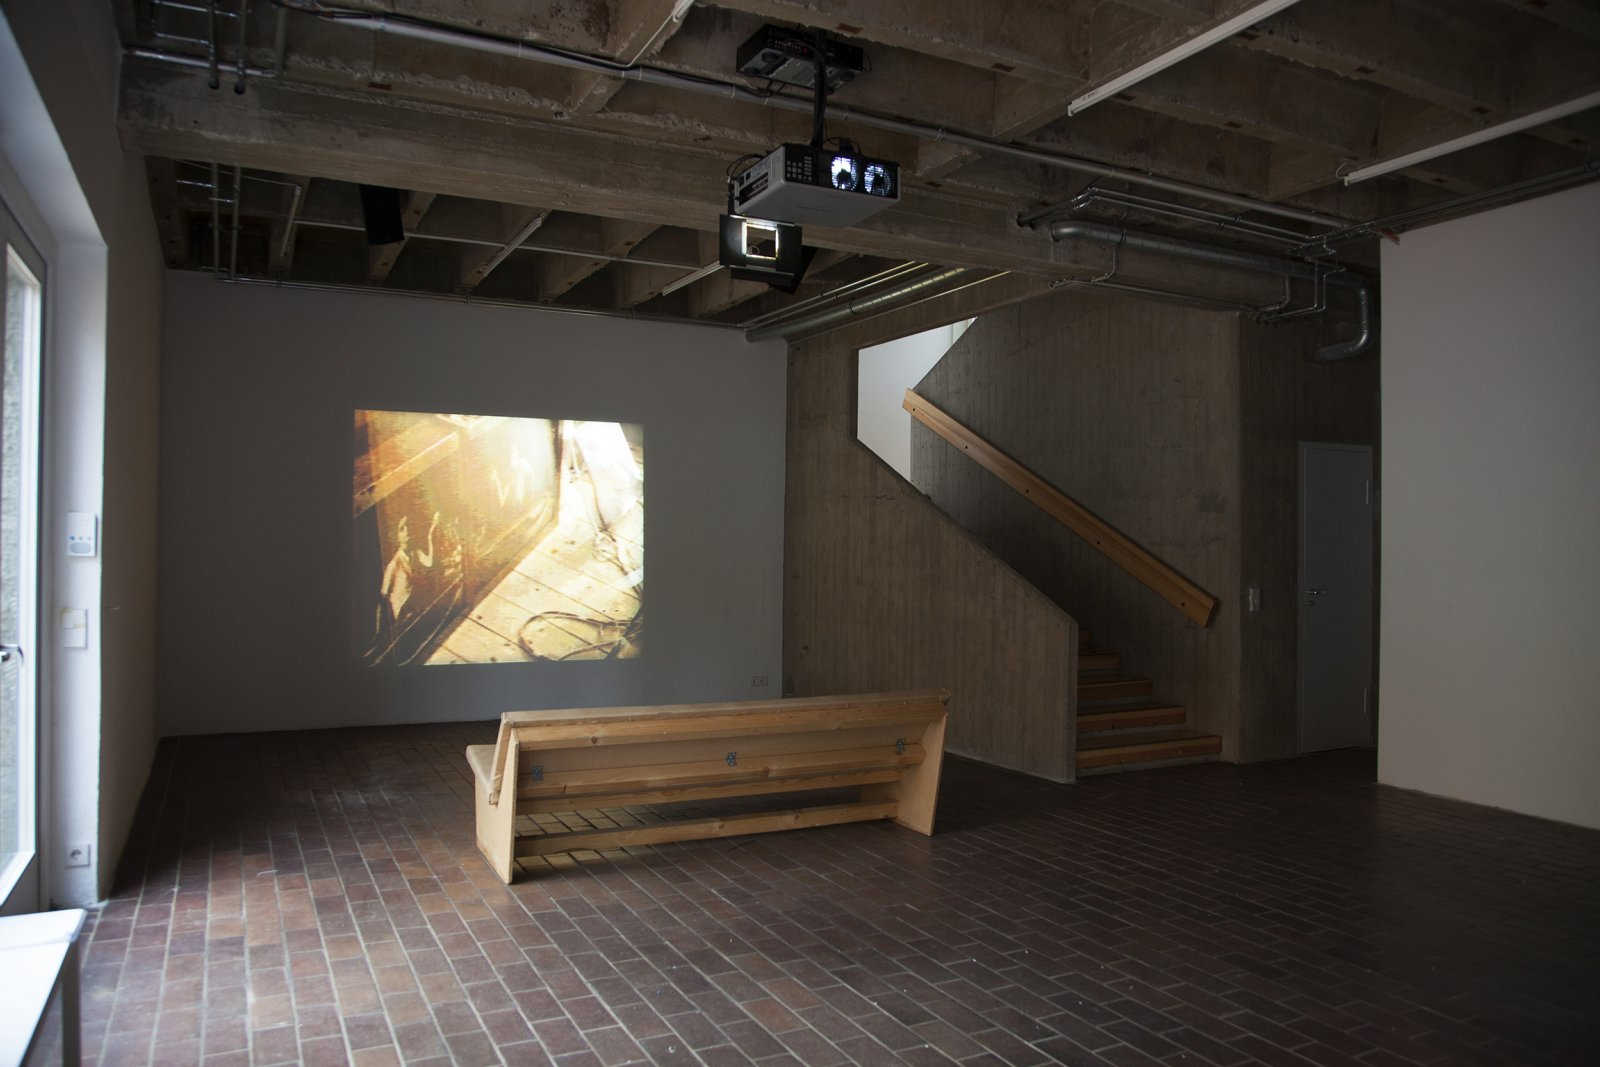 ​​​Christina Mackie, Foo, 1994, video, loop 11 minutes, 8 seconds. Installation view, ​Frog And​, PRAXES, Berlin, 2014​​ by Christina Mackie